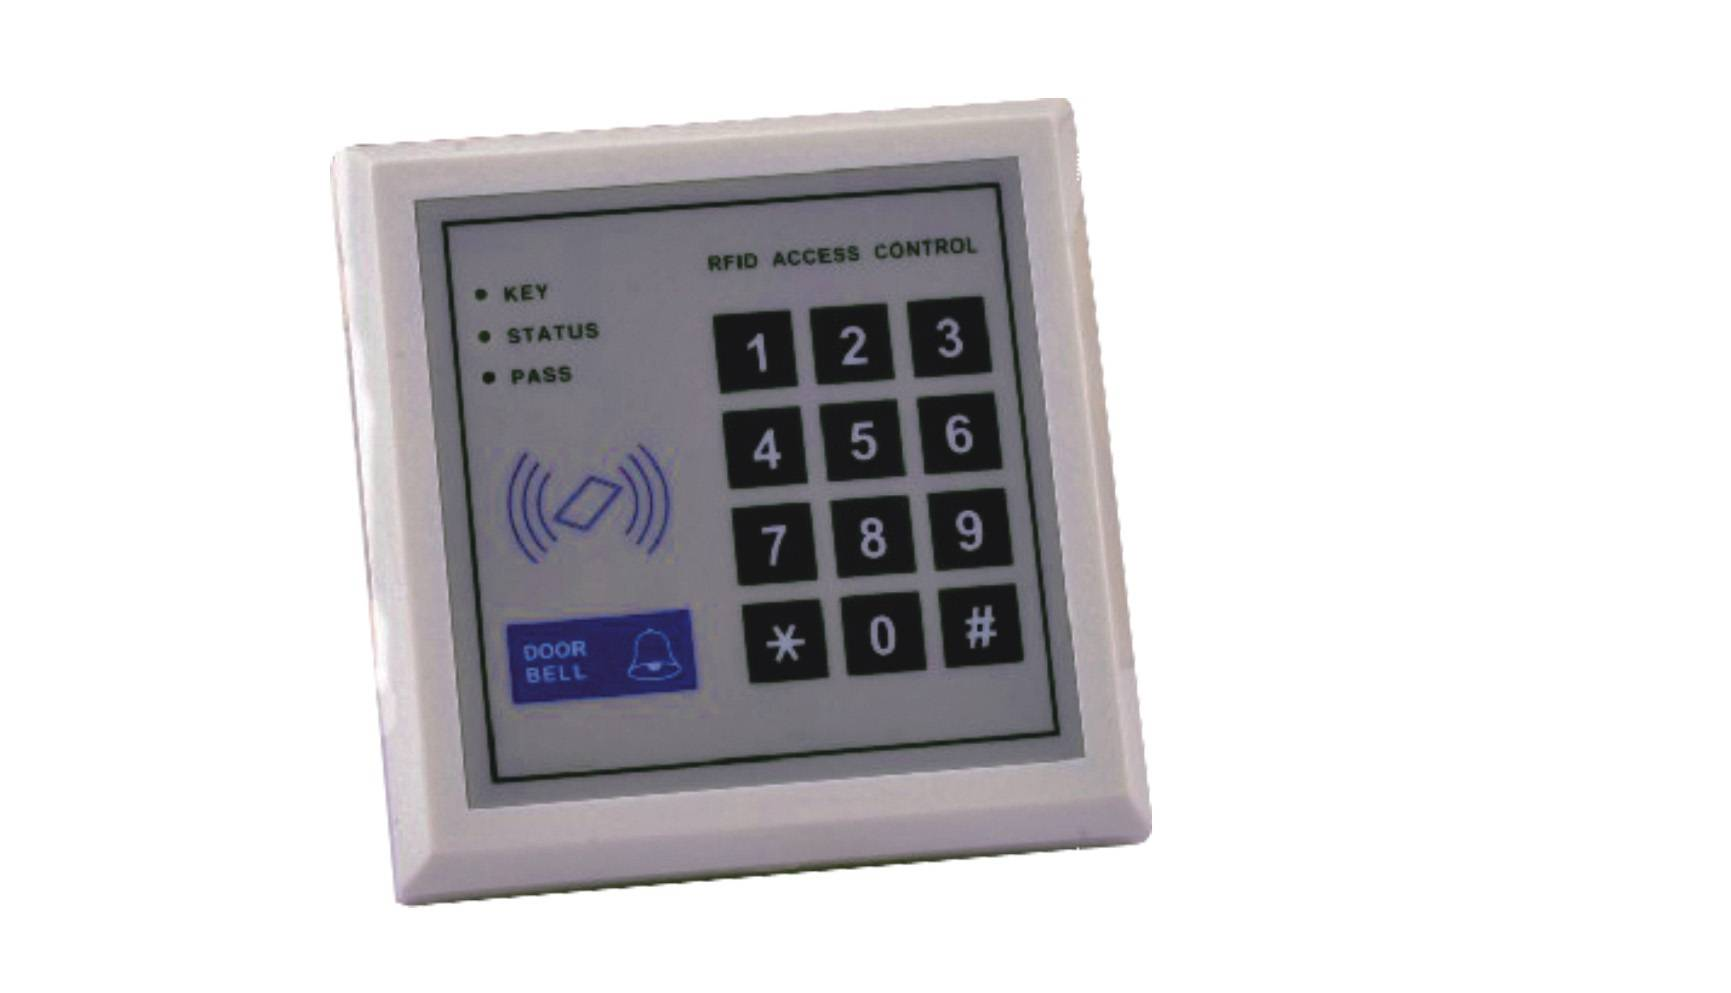 RFID & Code Access control  Keypad card reader of access control